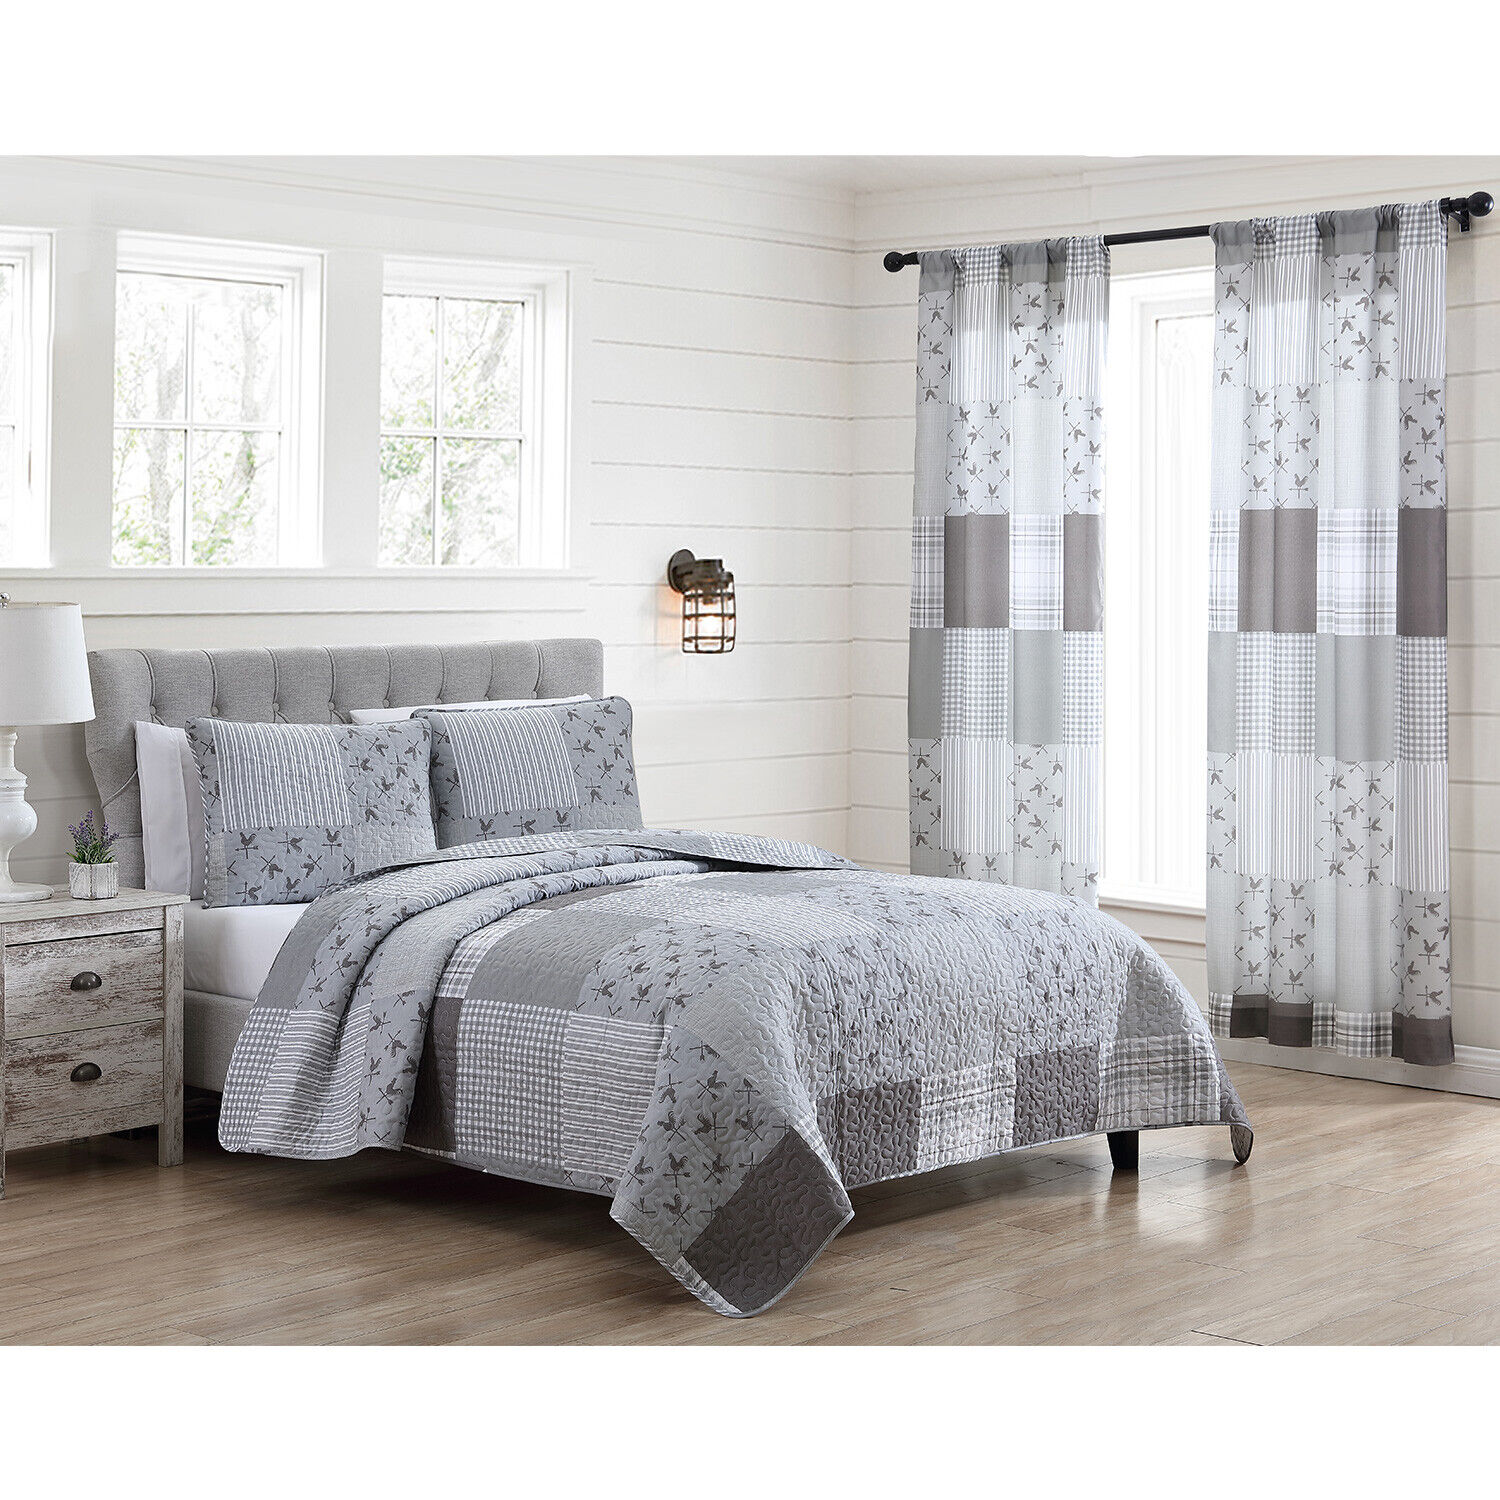 Full/Queen or King Farmhouse Patchwork Quilt Bed Set or Window Curtains, Grey Bedding